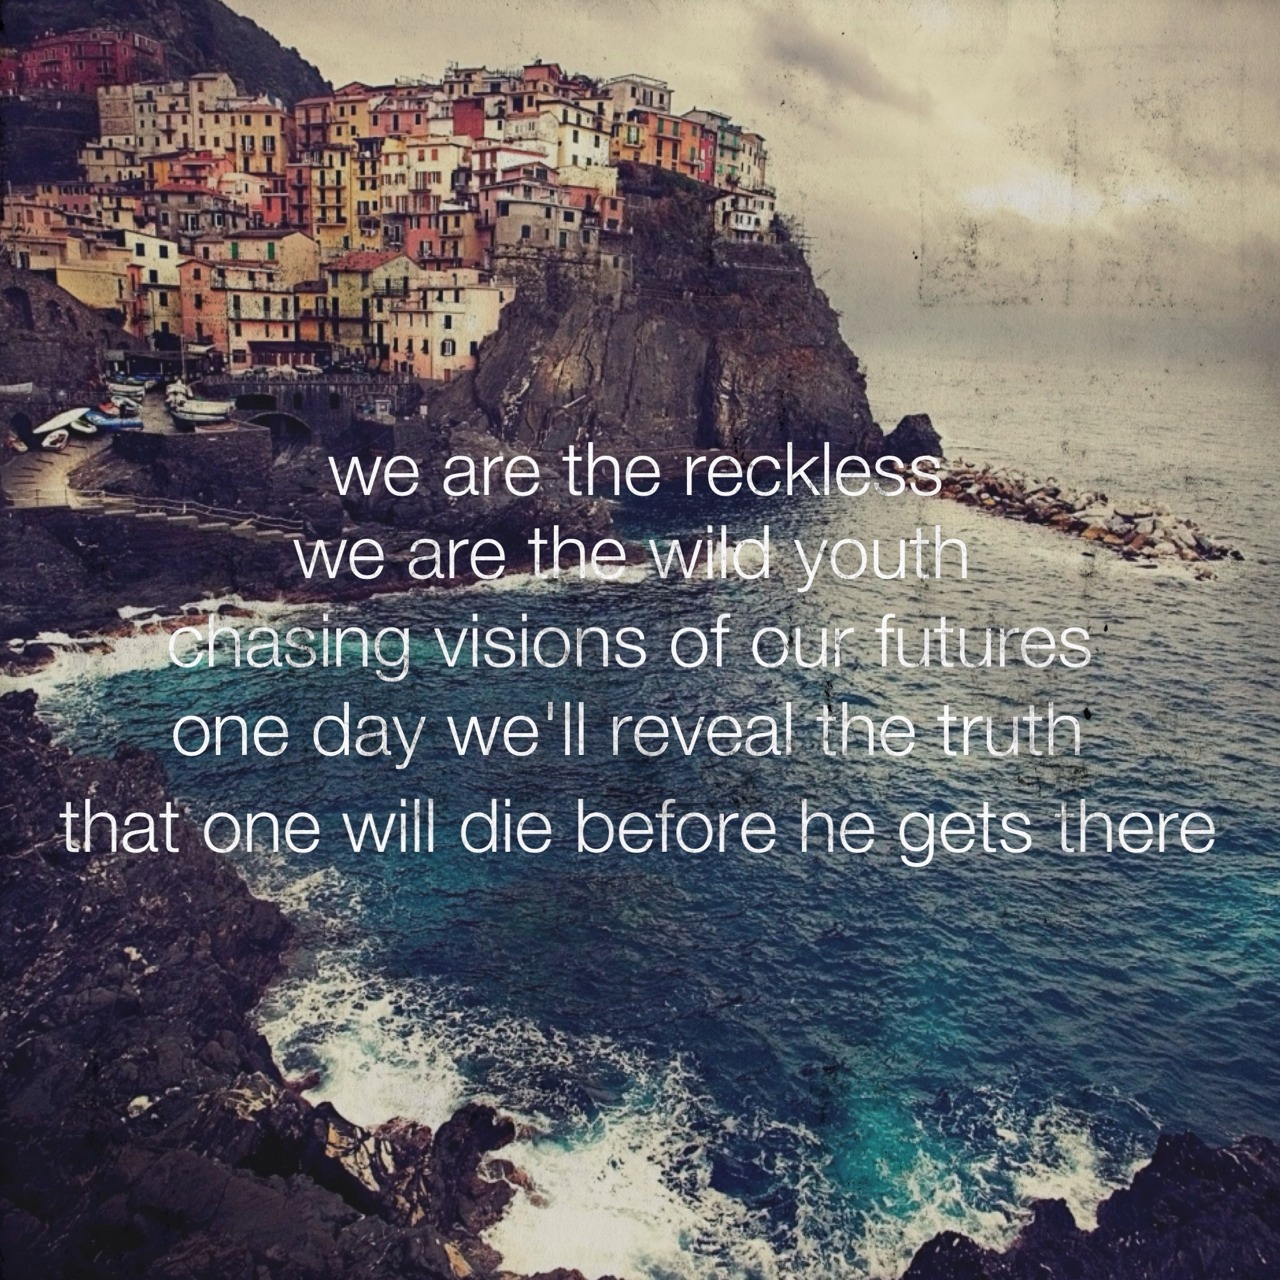 We are the reckless.